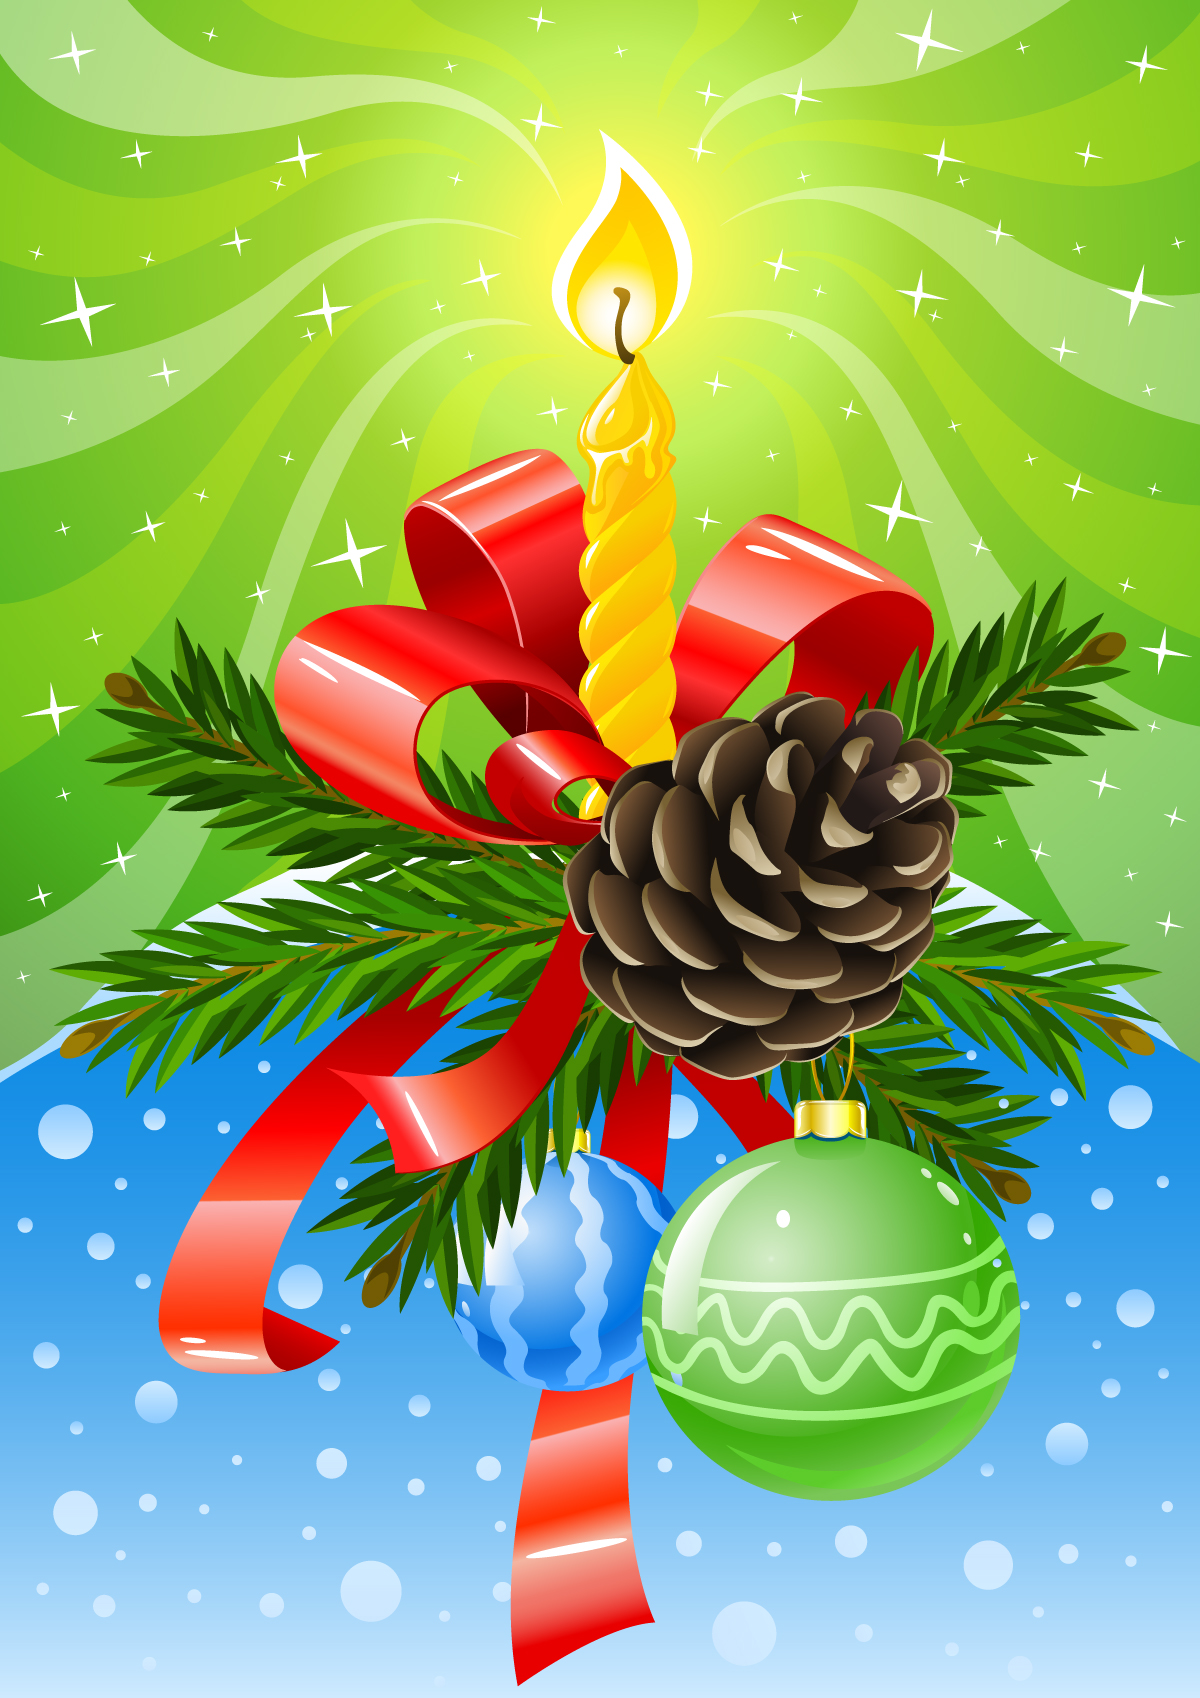 8 Christmas Candles Vector Images